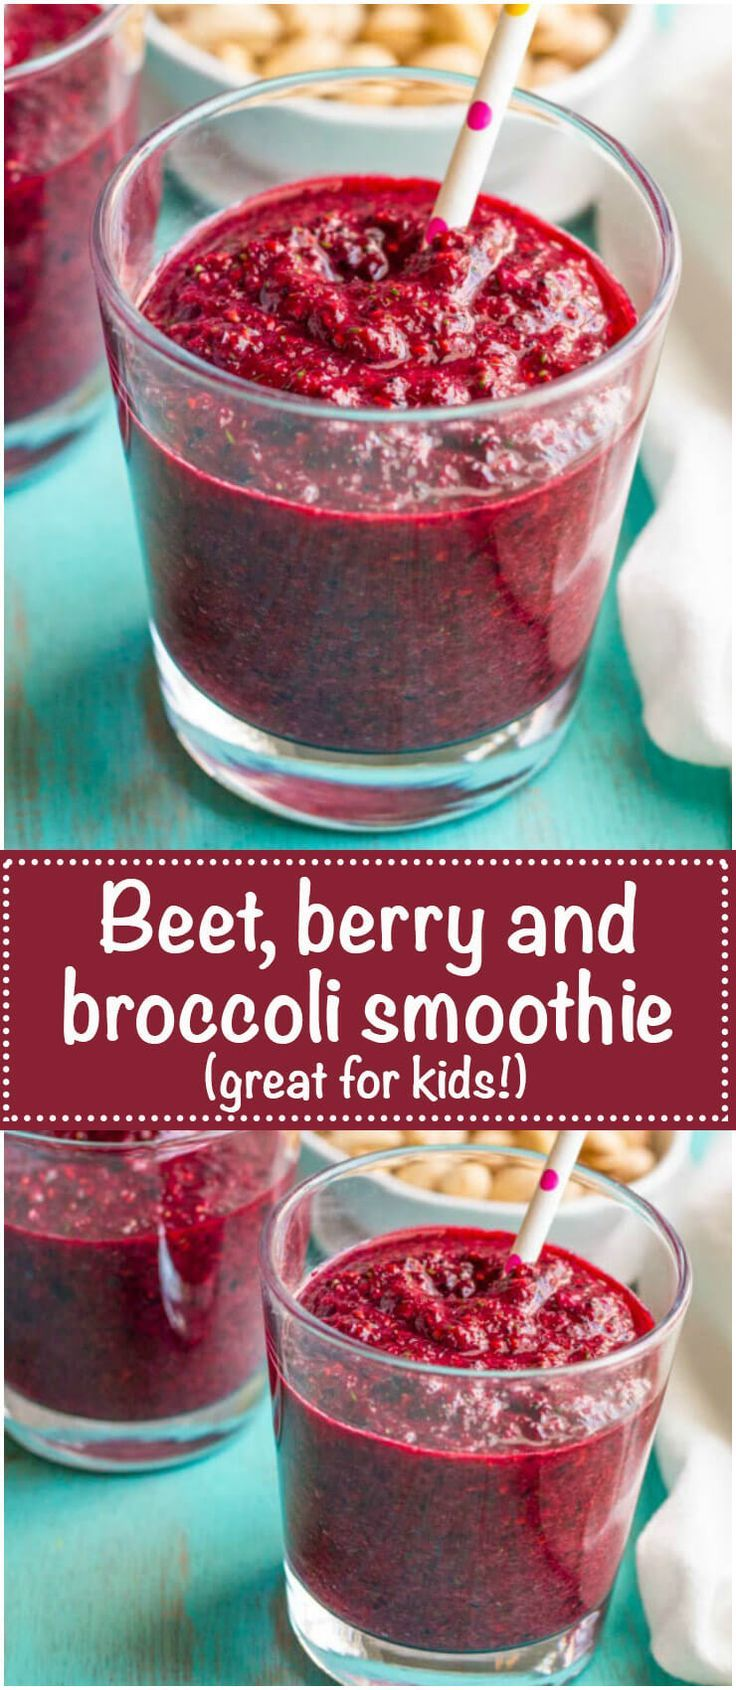 Berry beet smoothie with broccoli is a healthy, pretty fruit smoothie with a double dose of vegetables — a great way to get kids to enjoy their veggies! | www.familyfoodonthetable.com